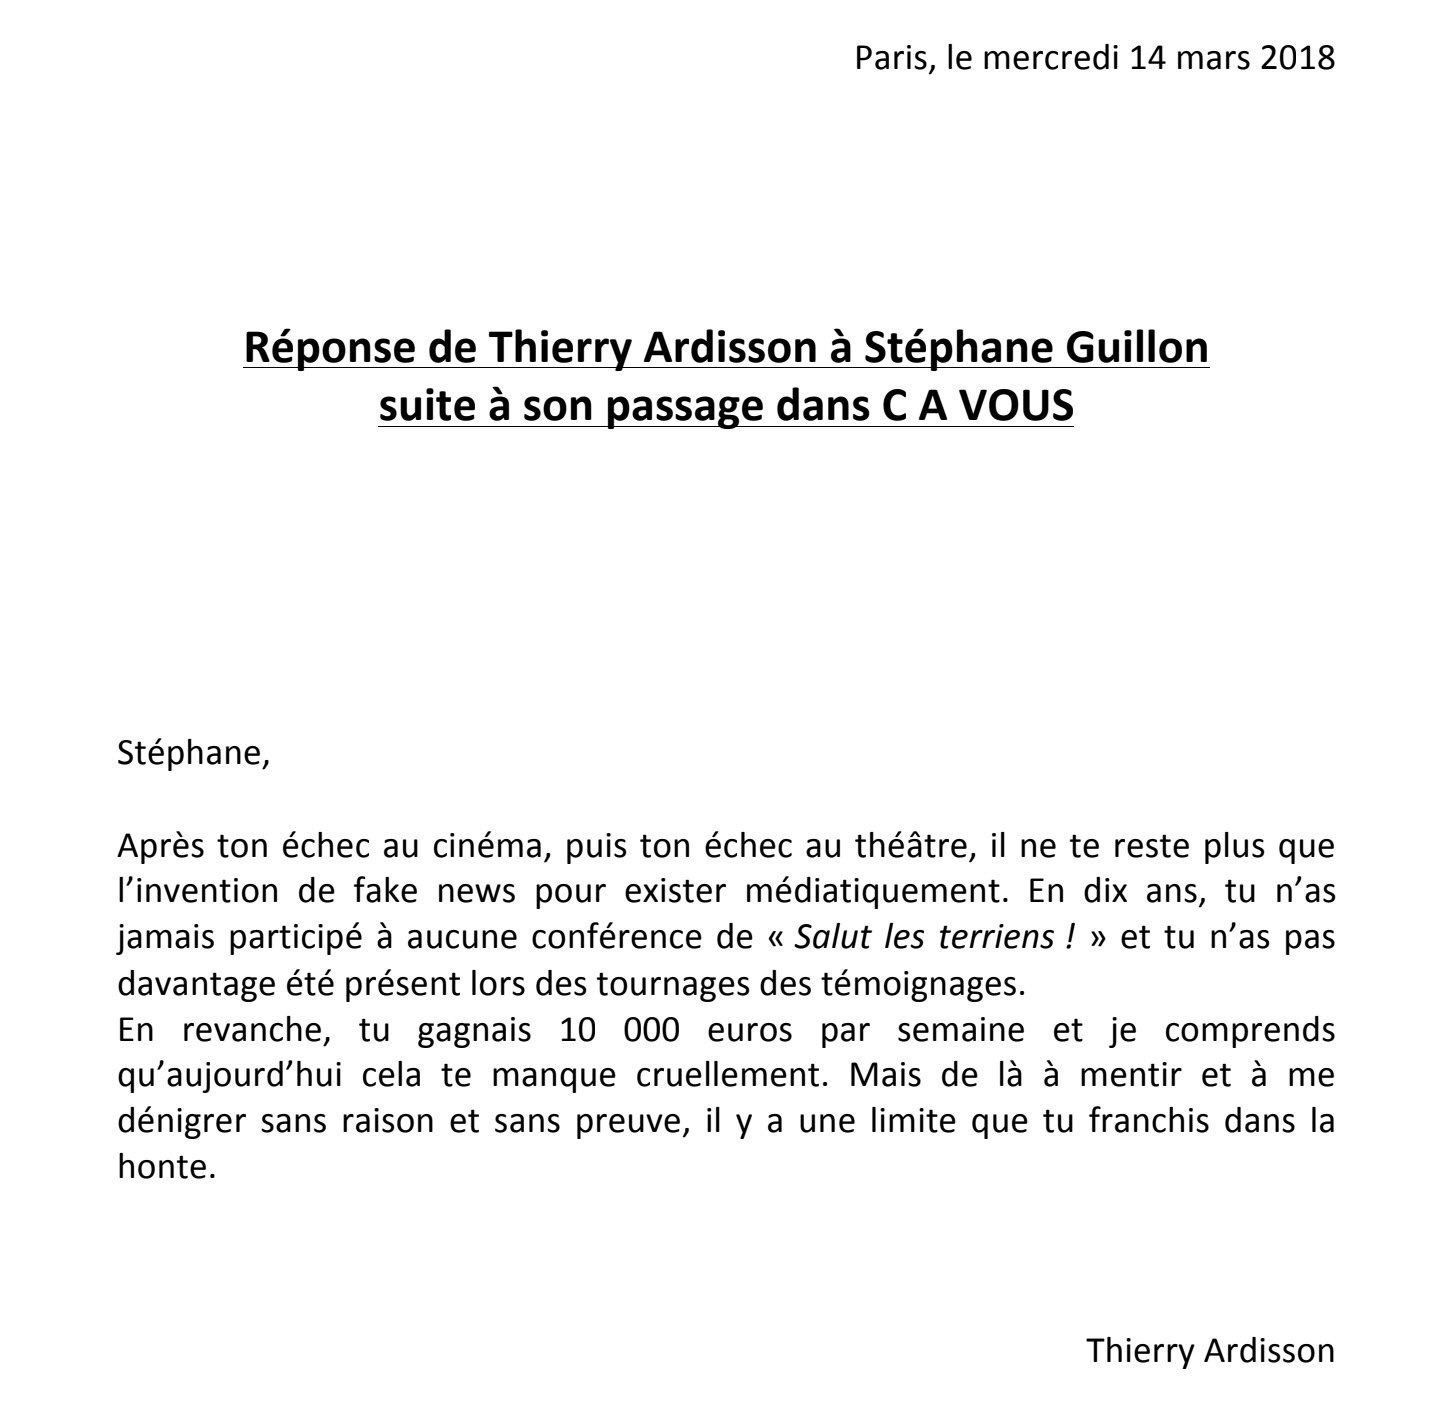 thierry ardisson clashe stephane guillon